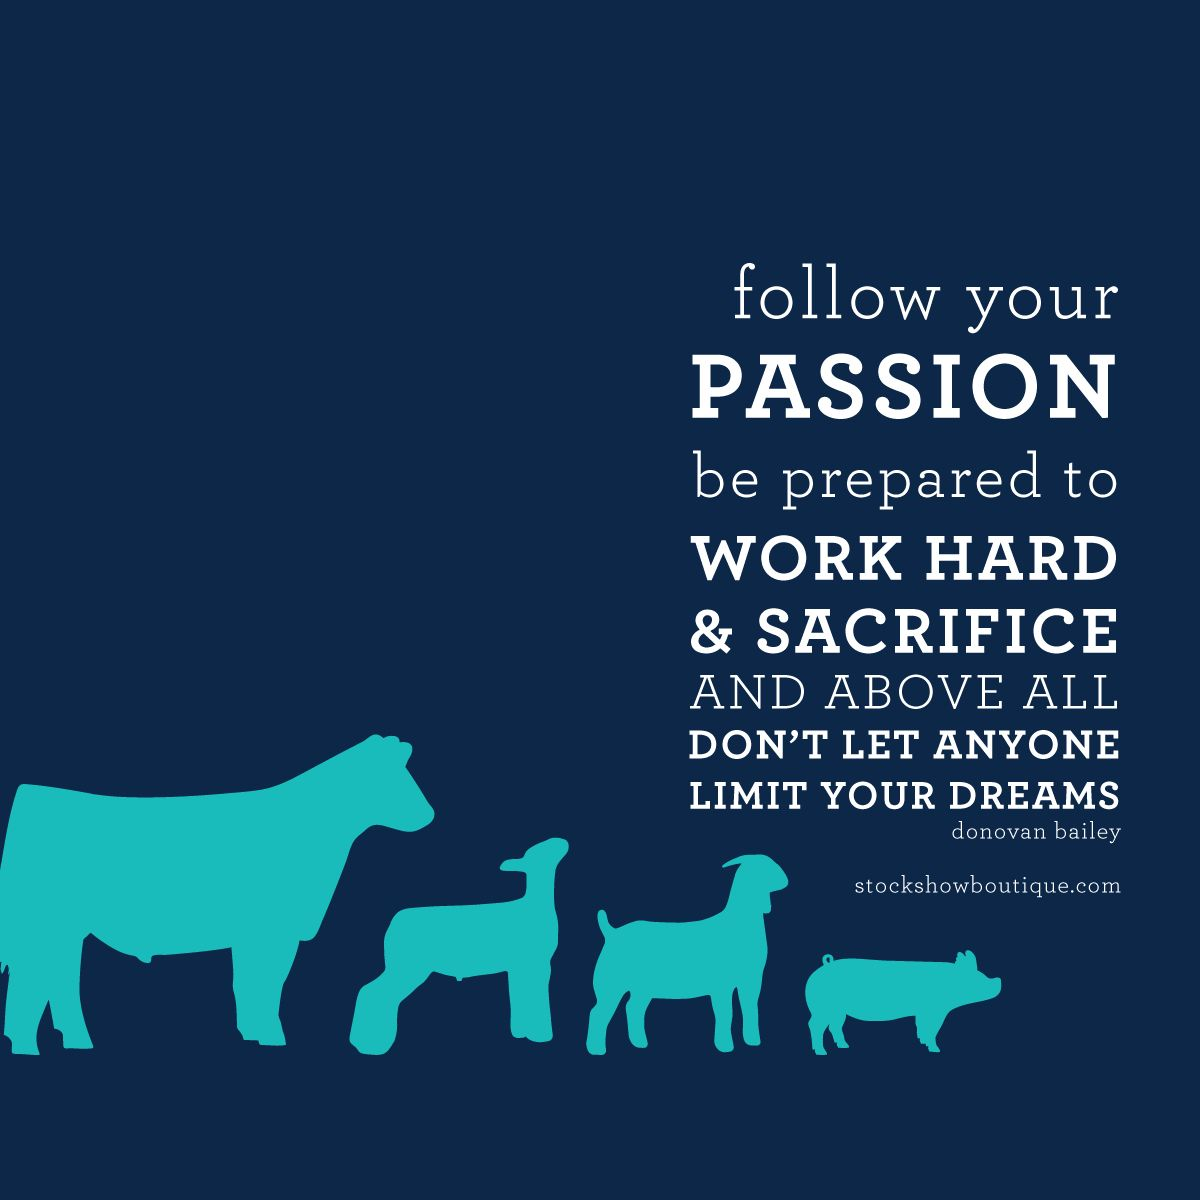 4 H Quotes Passion Dedication & Dreams Are Always A Recipe For Wild Success